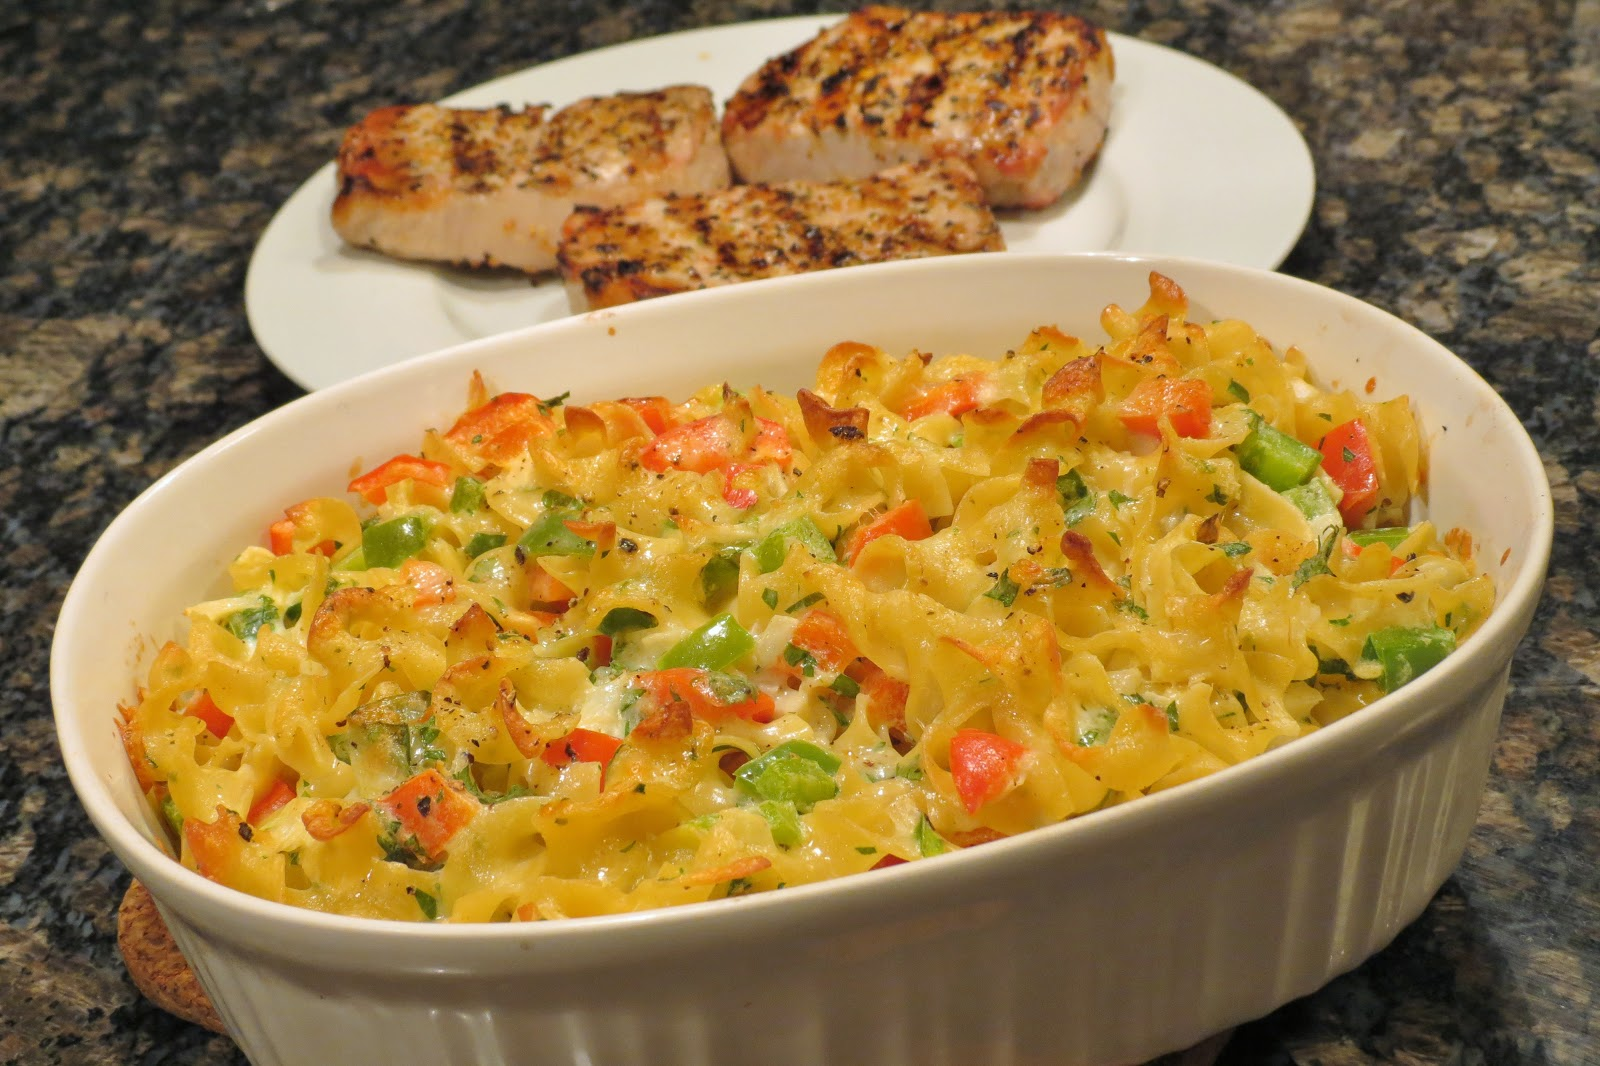 Dinner with the Welches: Egg Noodle and Vegetable Casserole